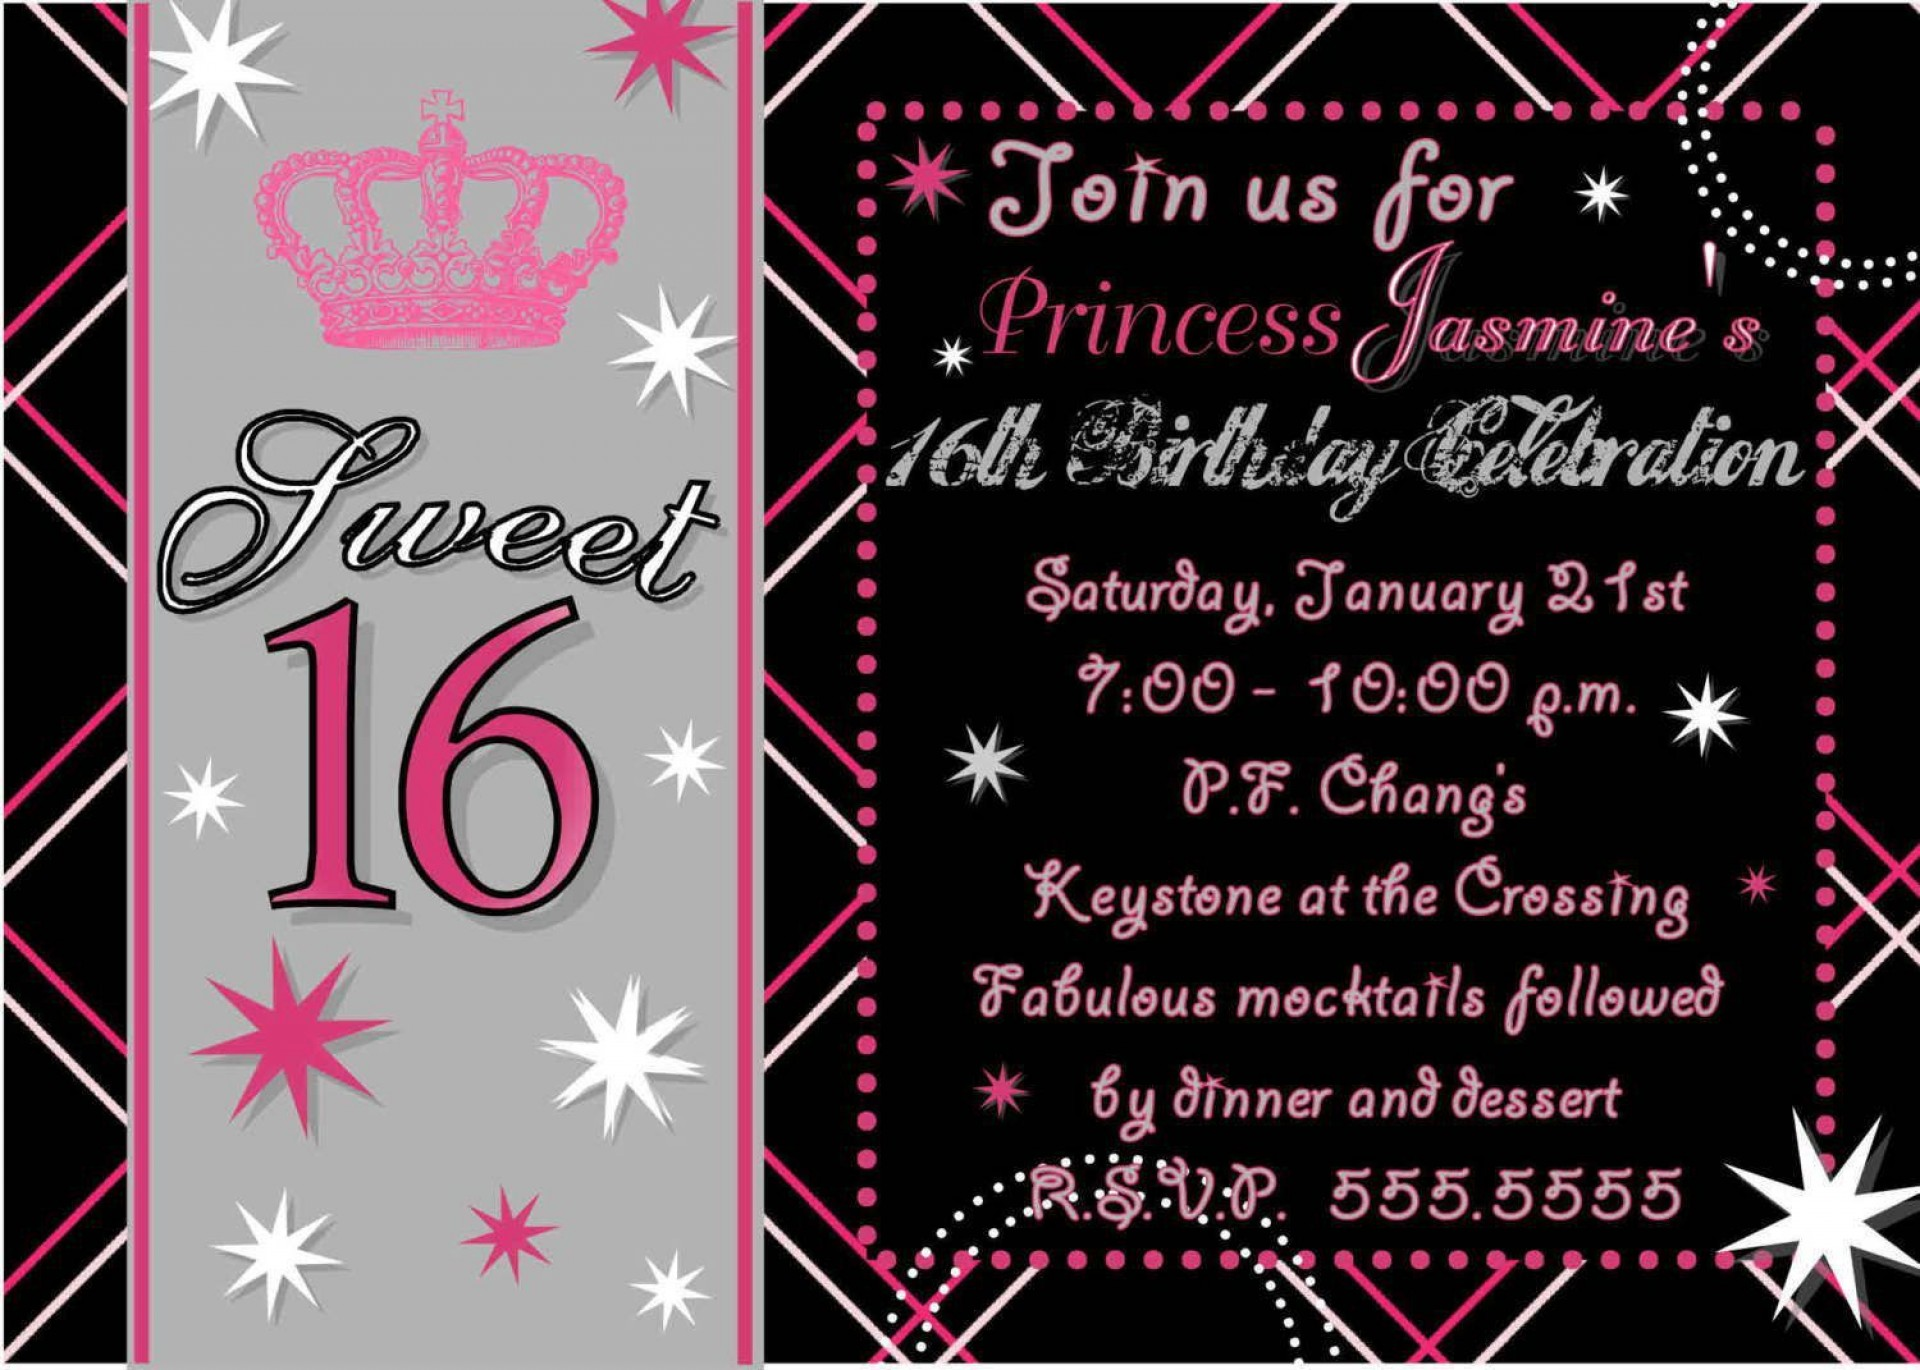 008 Fantastic Sweet 16 Invite Template Highest Clarity  Templates Surprise Party Invitation Birthday Free 16th1920